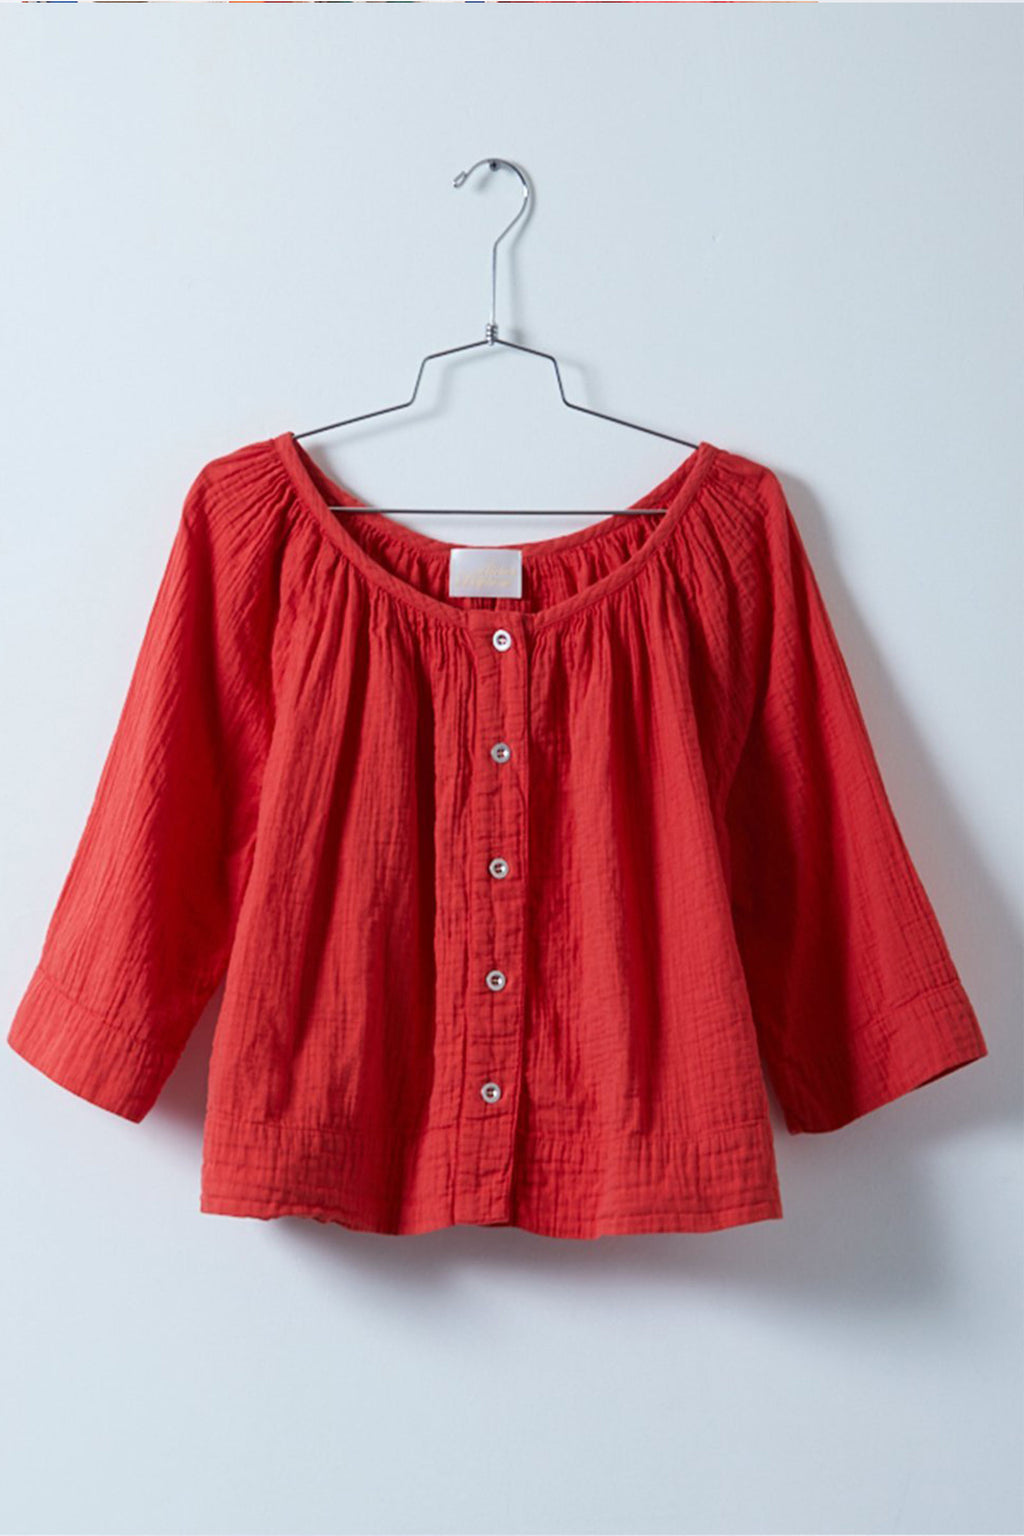 Atelier Delphine Millie Top in Scarlett